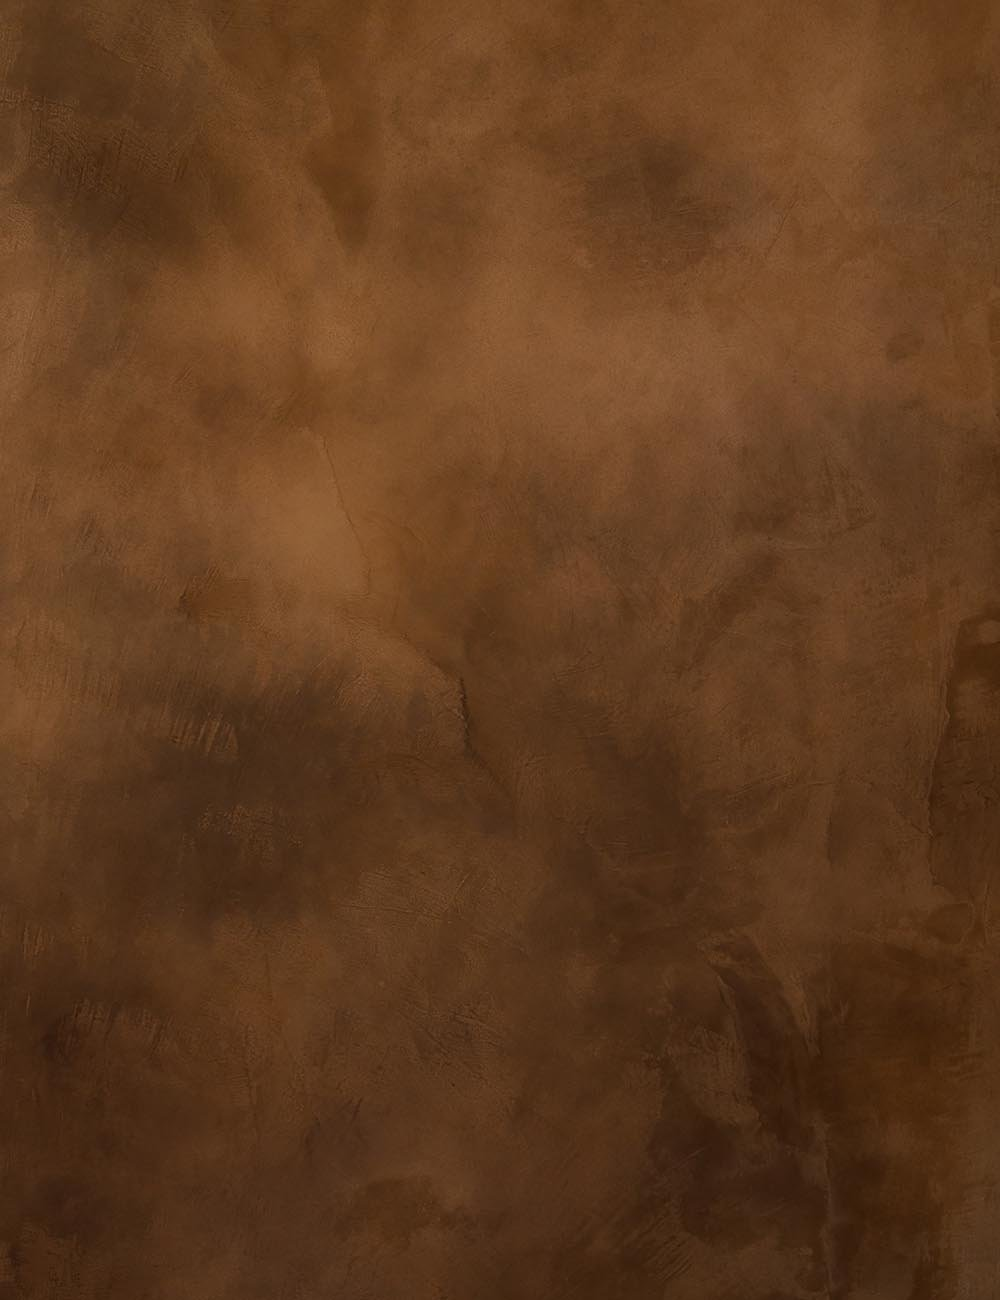 Abstract Khaki Texture Printed Old Master Backdrop For Photo - Shop Backdrop